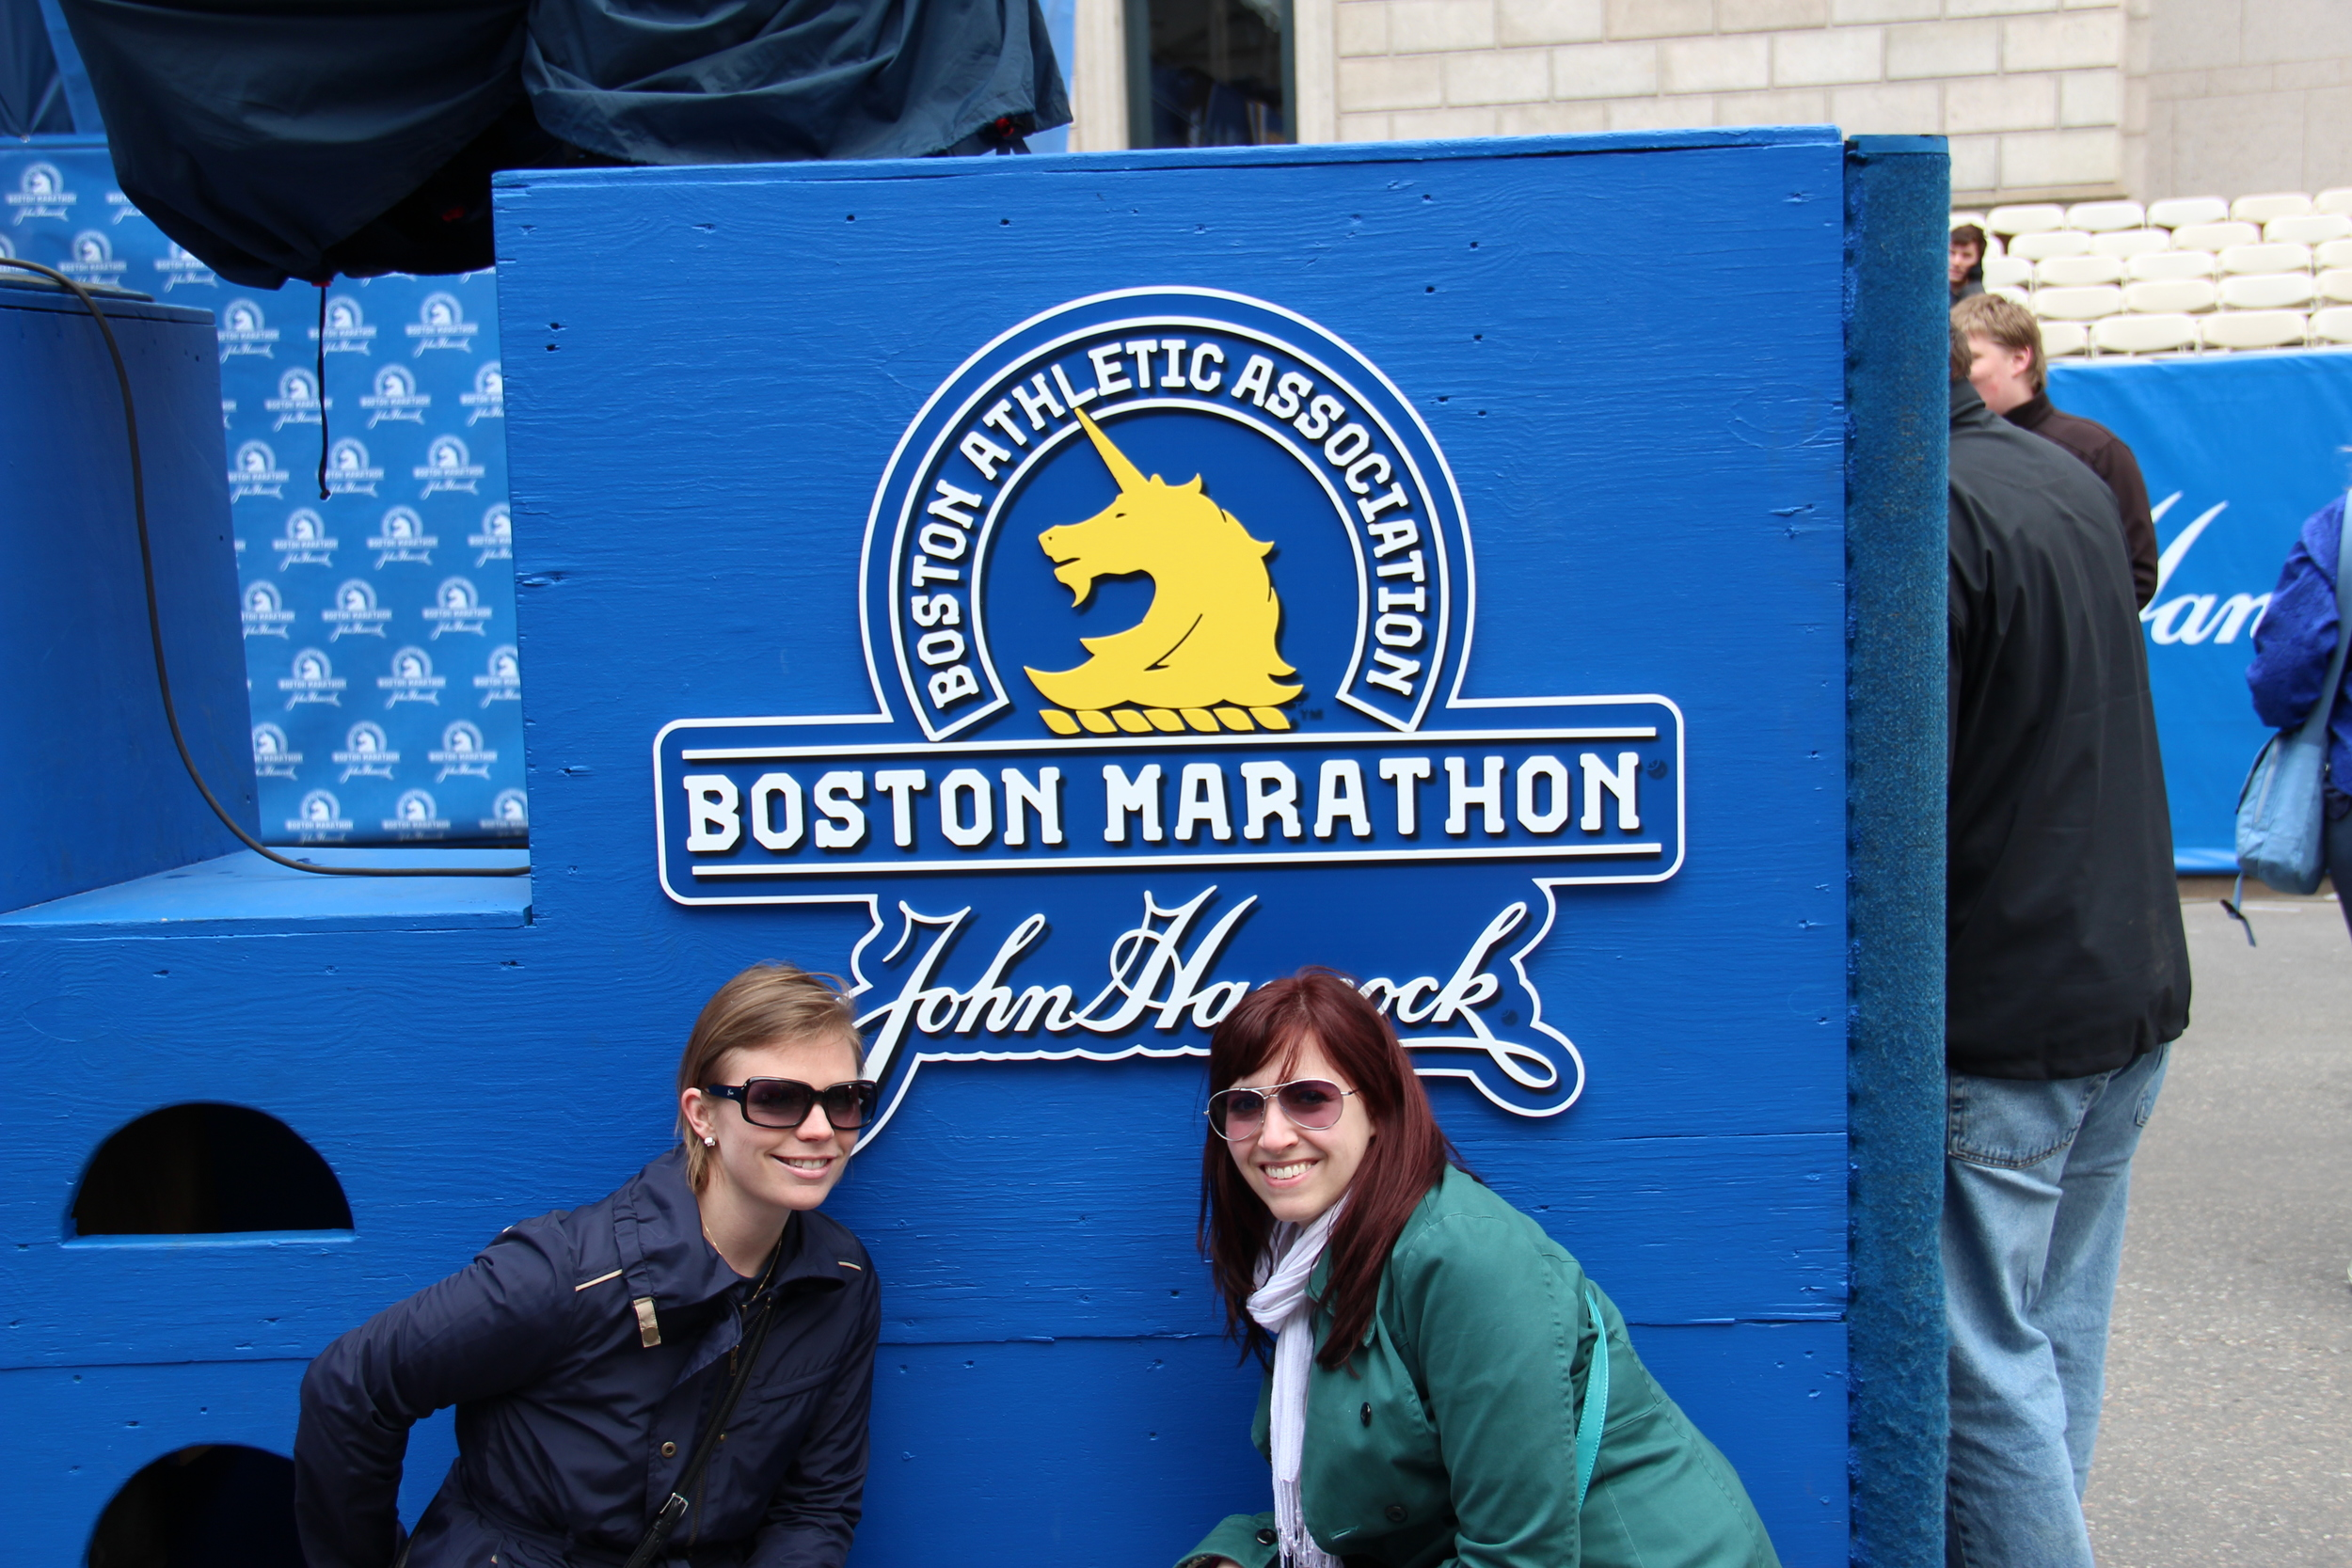 My super good friend Anne Schomber, OTR/L is on the left with me on the right. This picture was taken on April 14, 2013 at the Finish line for the Boston Marathon.